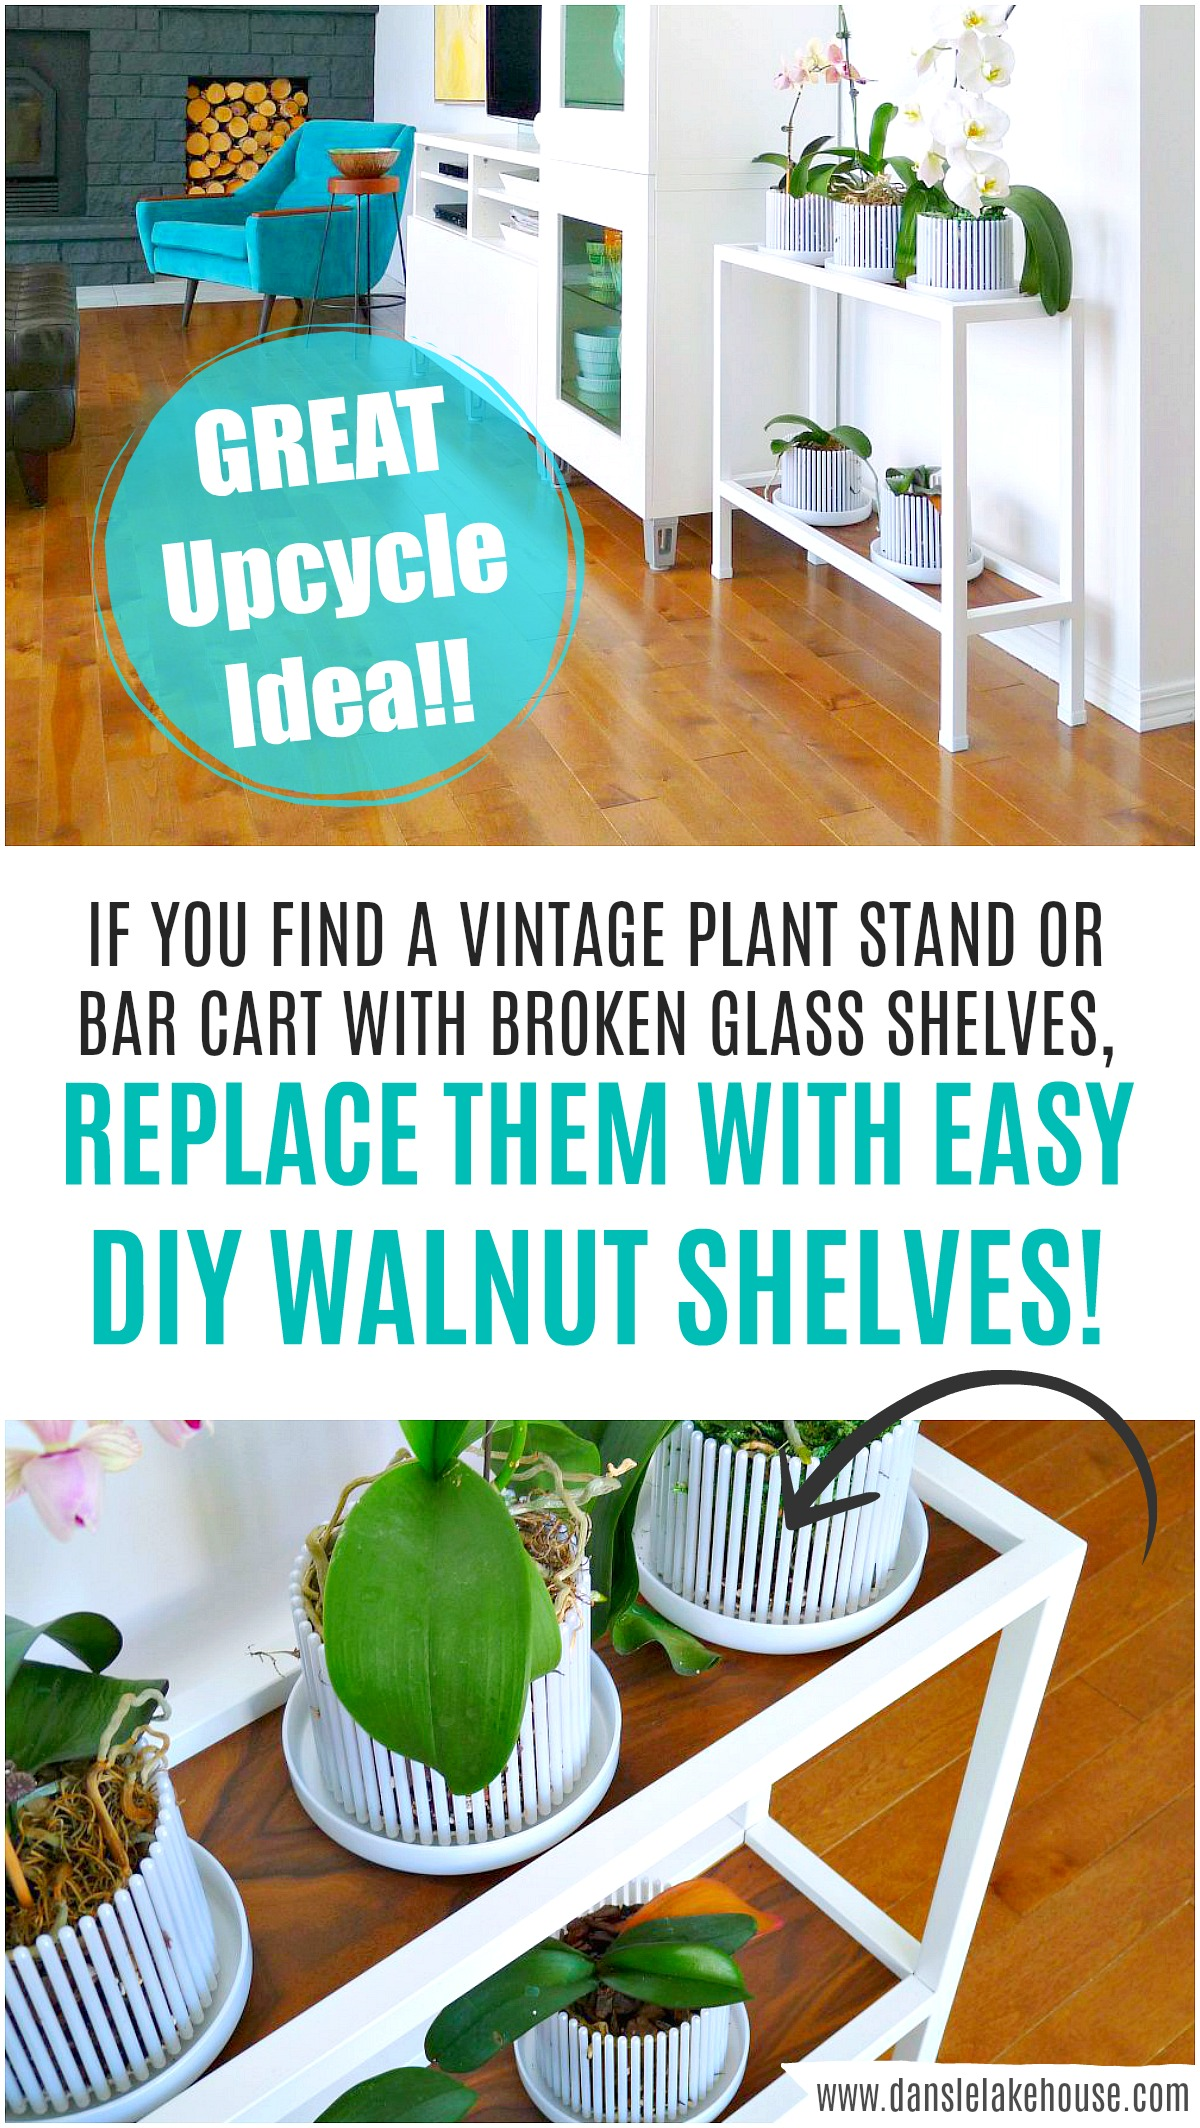 Next time you see a sad shelf or bar cart, you know that you can update broken glass shelves with DIY walnut plywood shelves! Great furniture upcycle makeover. #furnituremakeover #upcycle #budgethomedecor